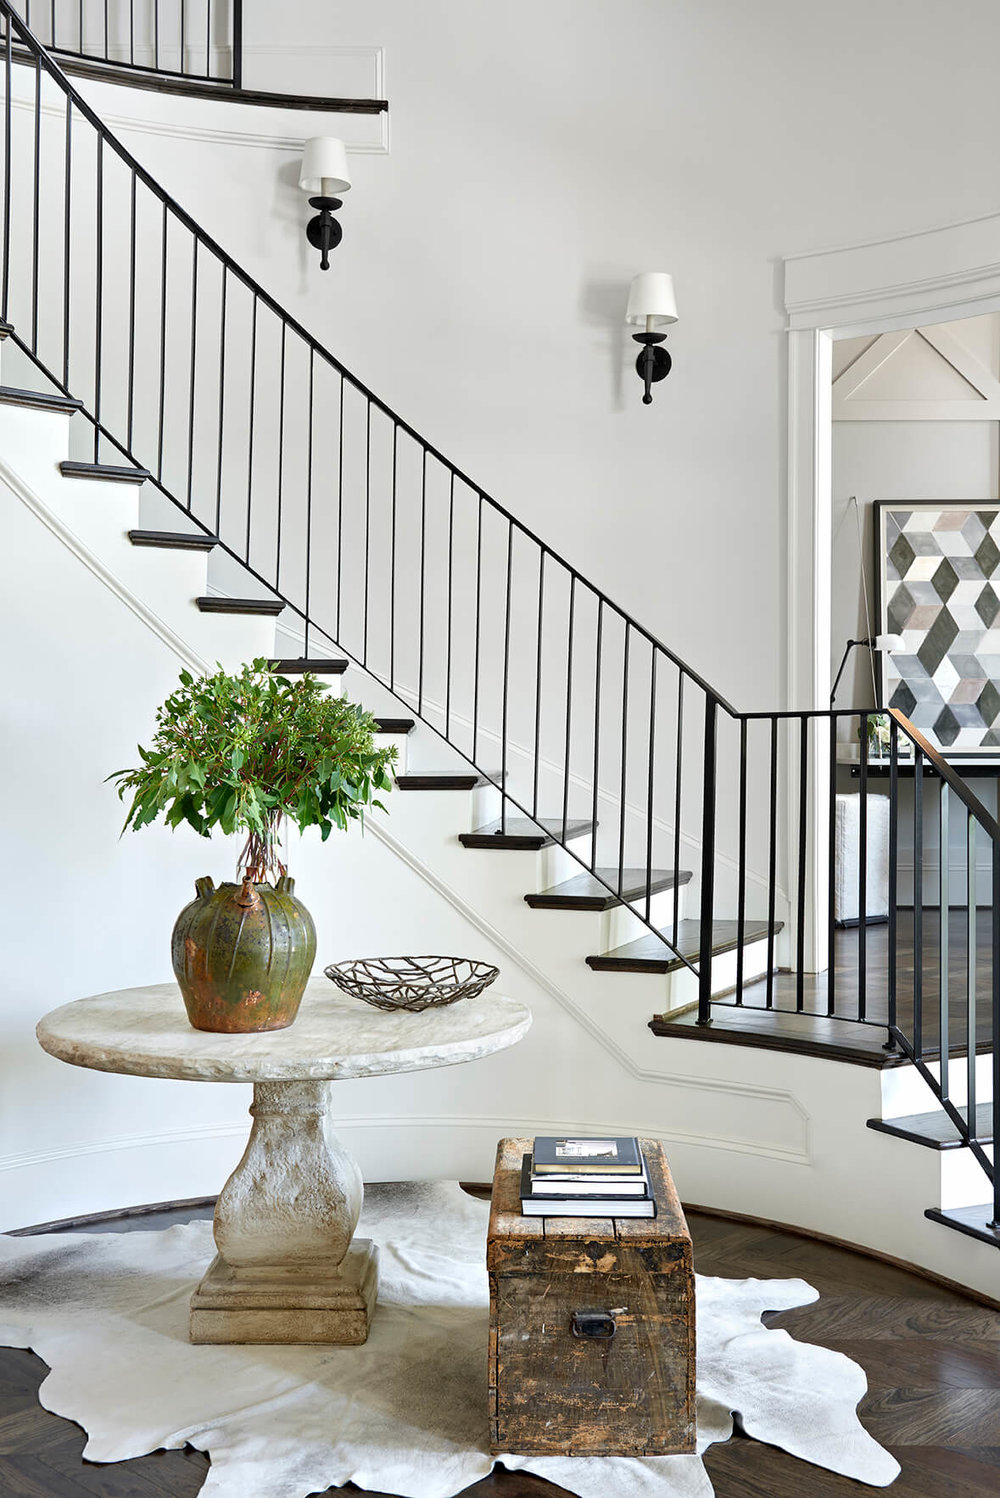 Staircase with dark stairs, side table on an animal skin rug - Rustic Contemporary Bureau Interior Design Nashville TN